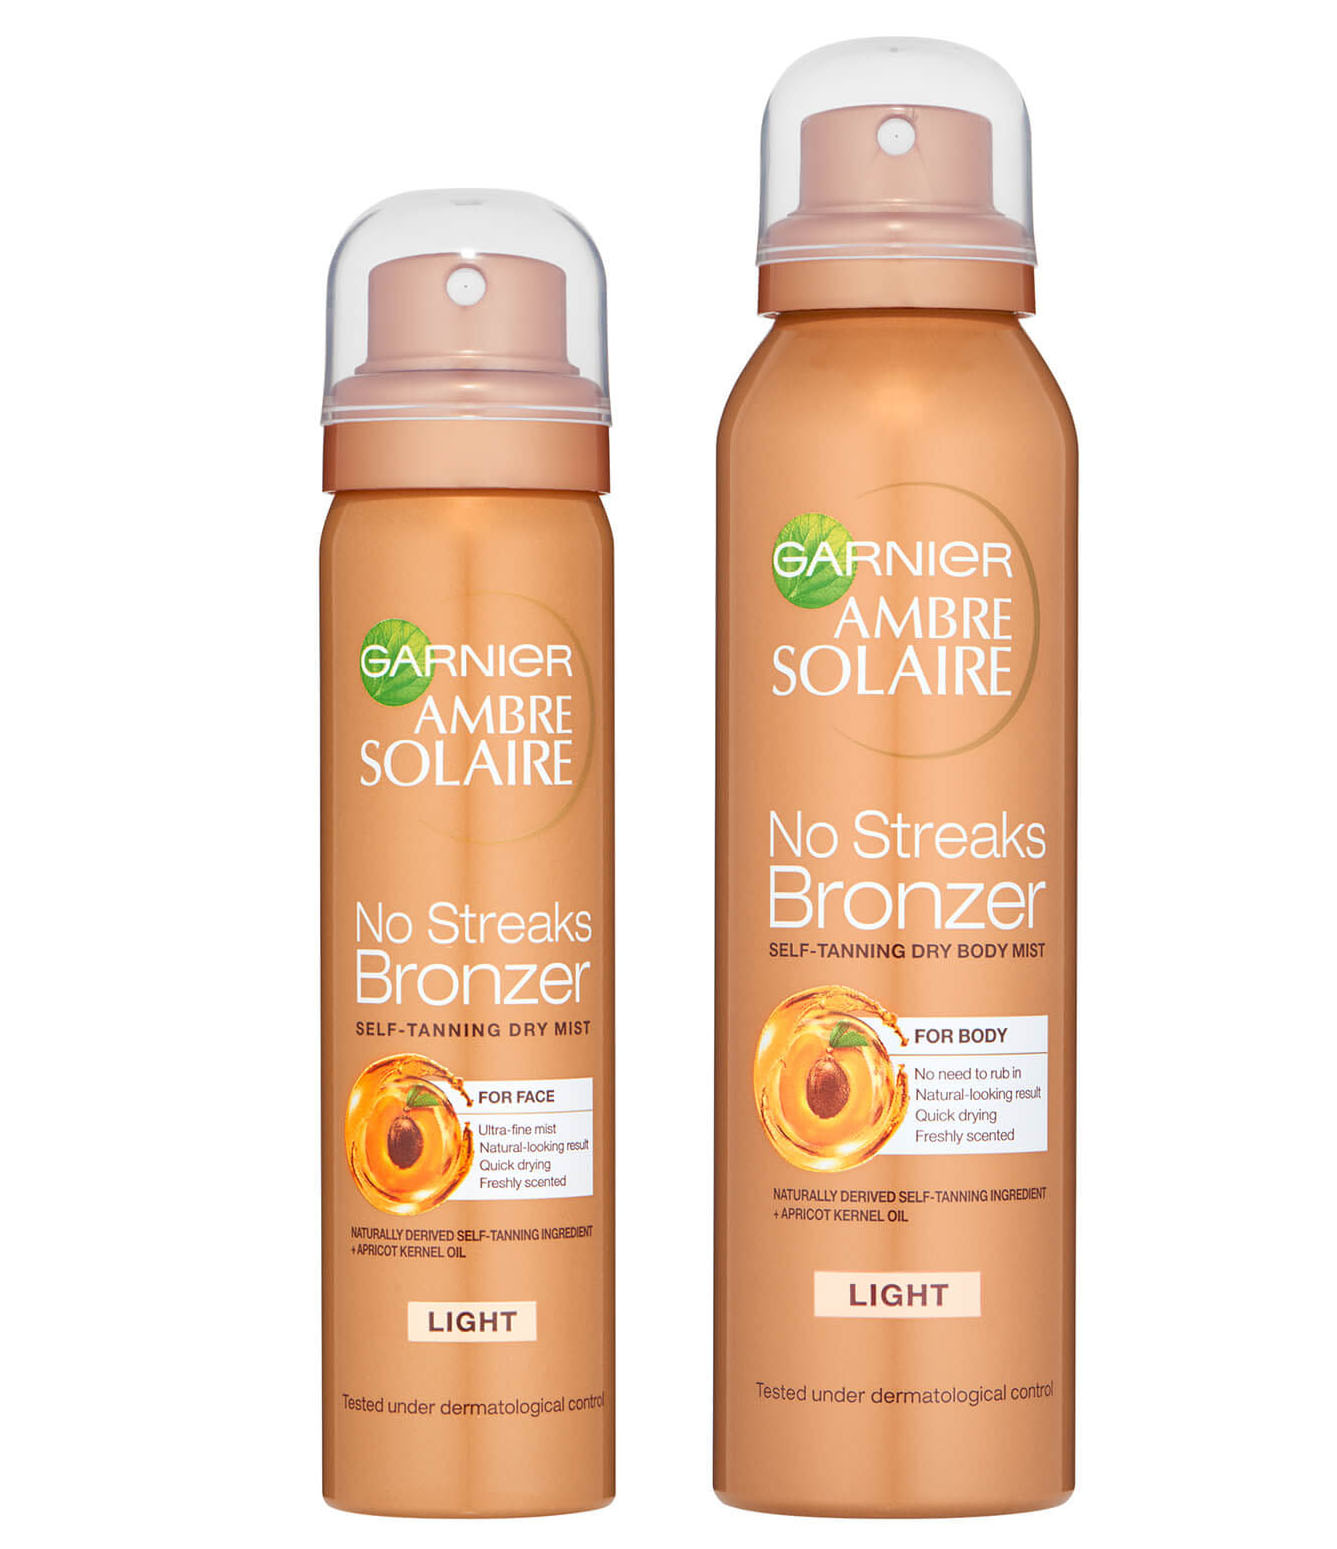 Garnier Ambre Solaire Summer Body and No Streaks Bronzer Self Tan